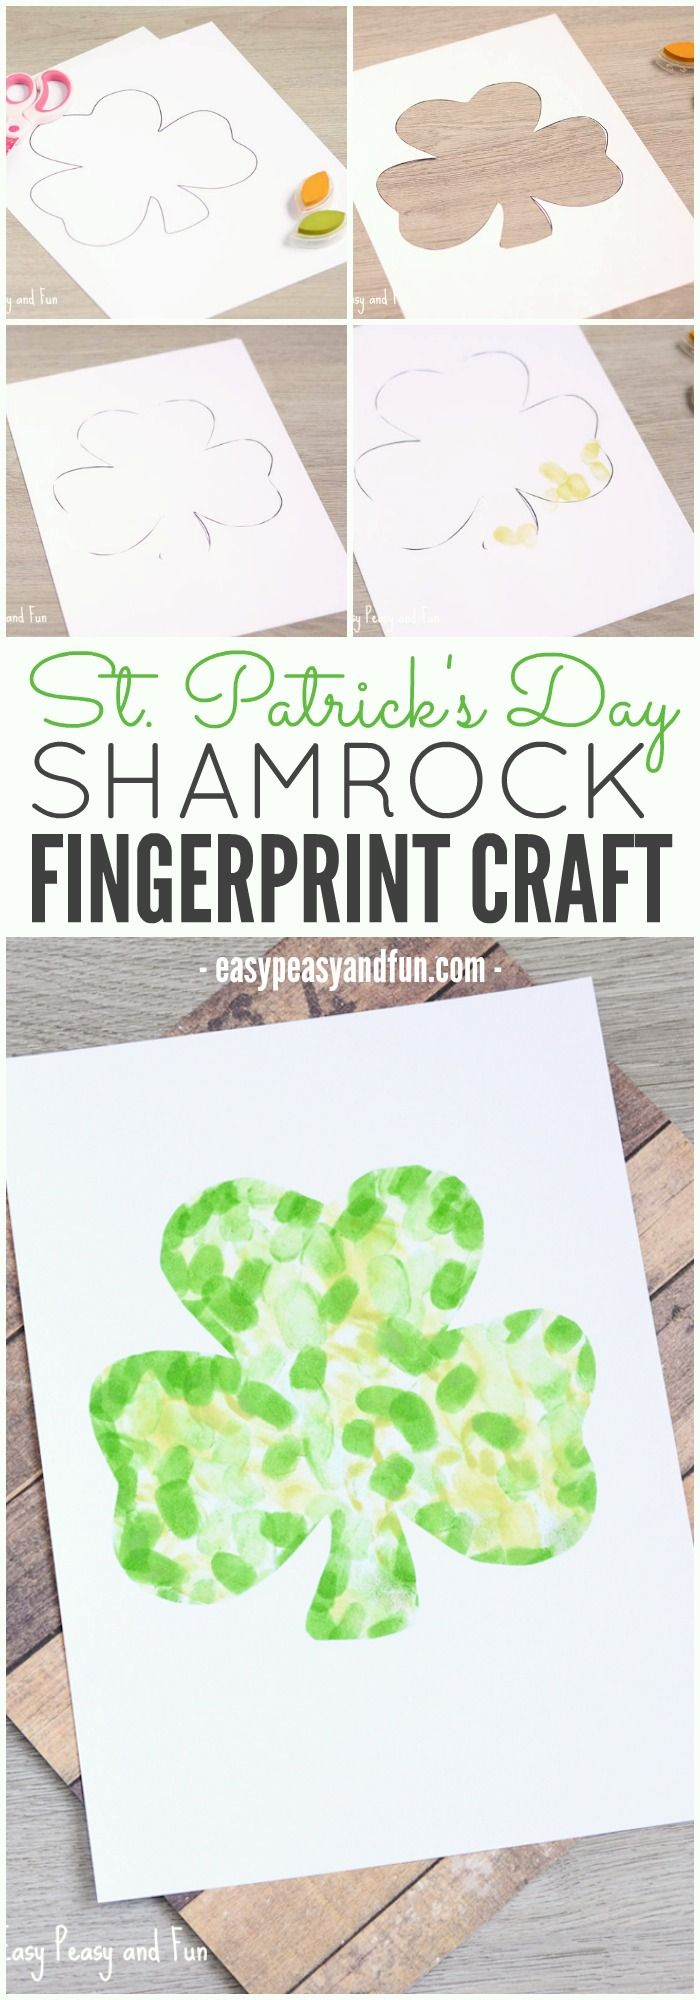 173 best St. Patrick\'s Day for Prek-2 images on Pinterest | Crafts ...